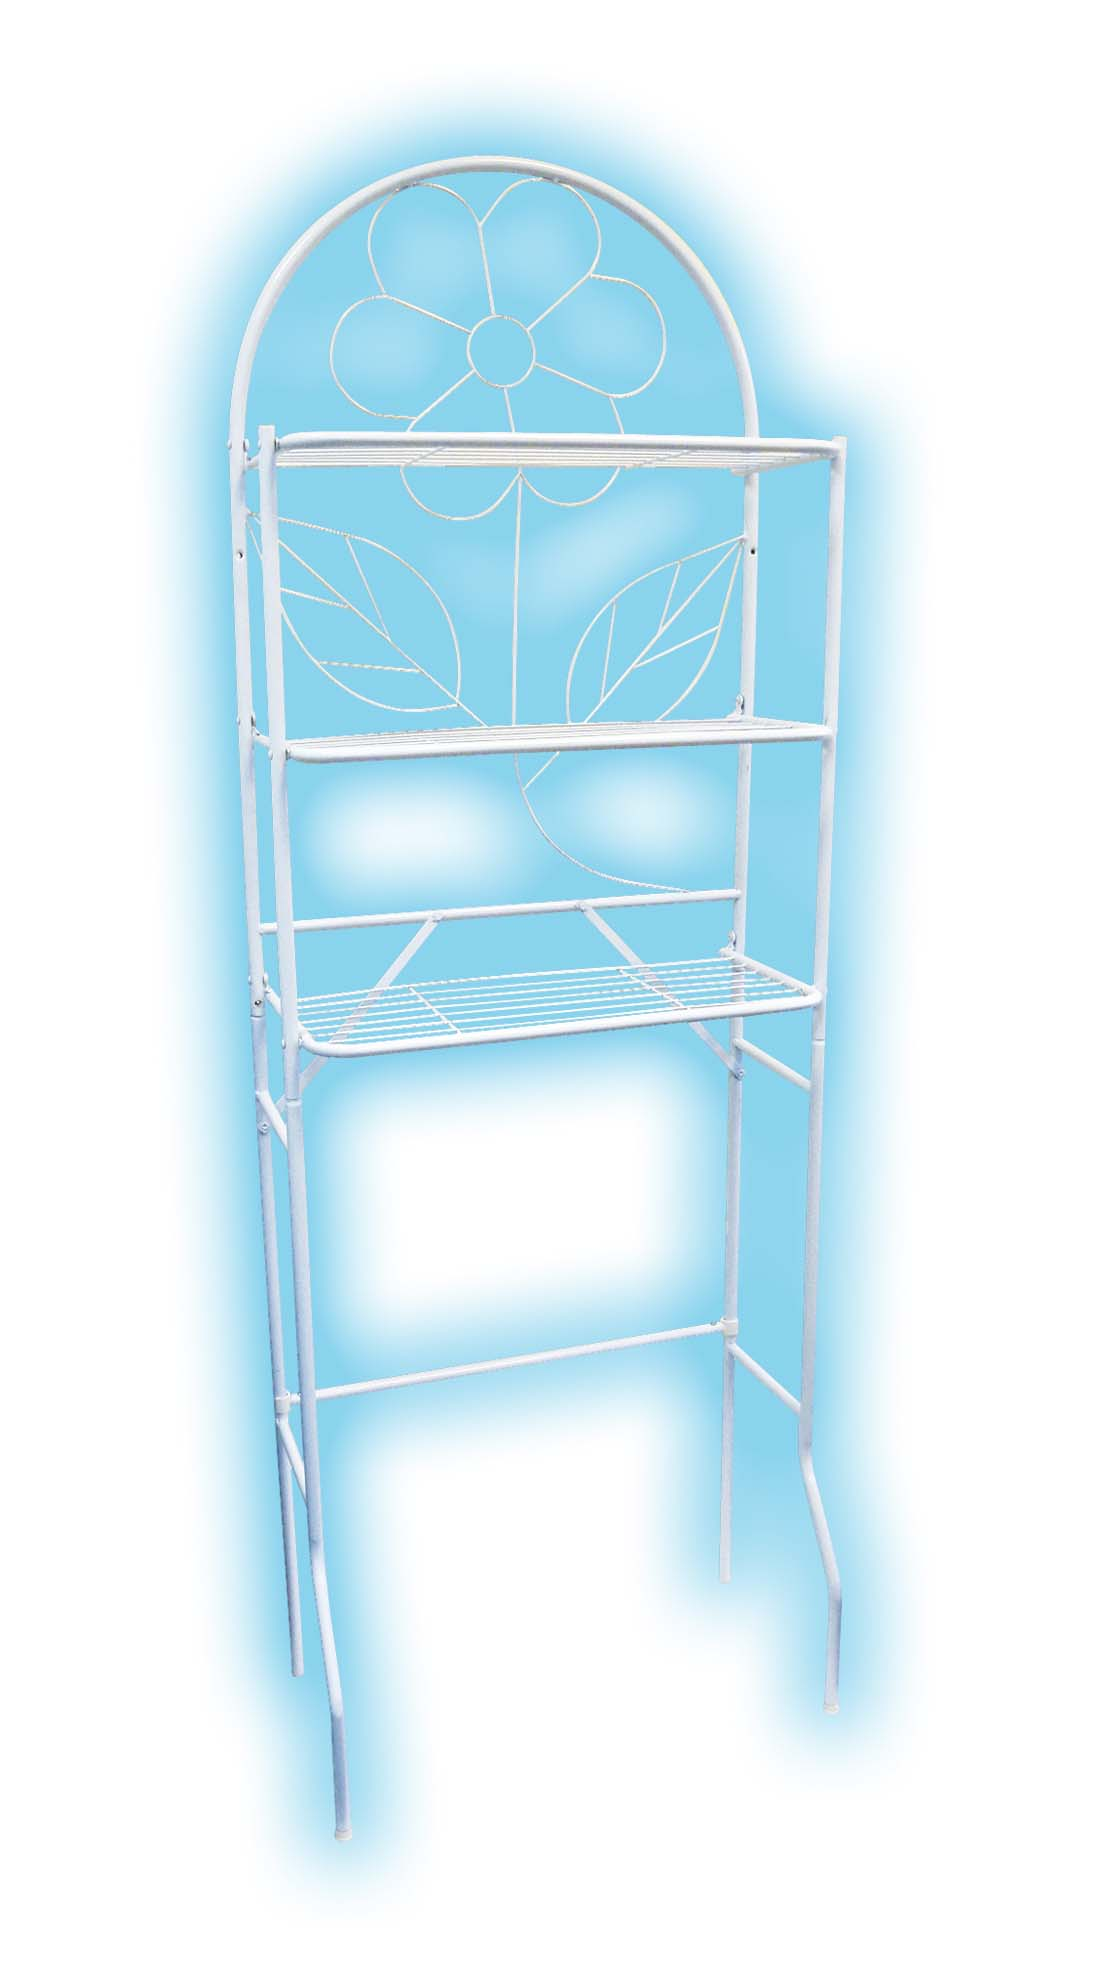 View BATHROOM SHELVING UNIT 23.75 X 13 X 69 INCH 3 SHELVES WHITE